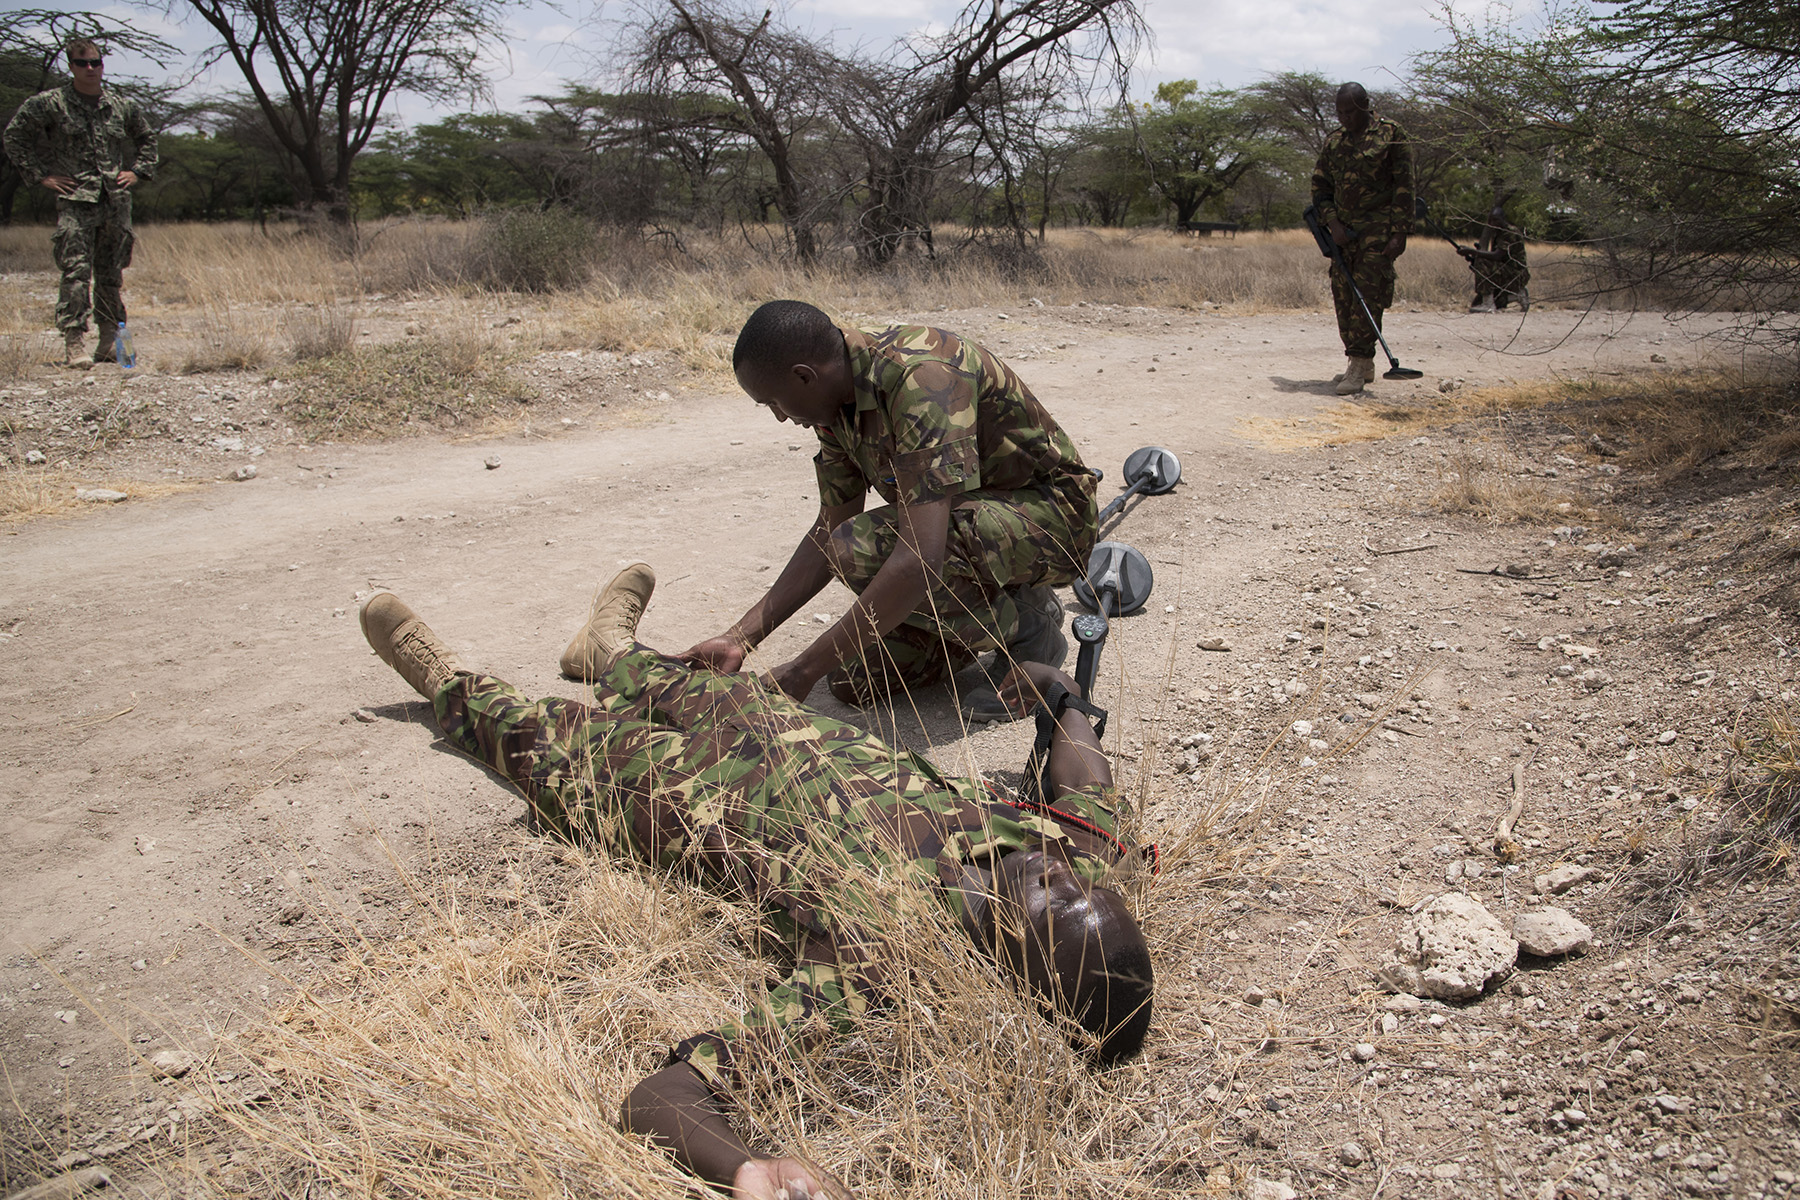 KENYA – Kenyan Defense Force combat engineers conduct simulated medical care during a mine strike exercise as part of tactical combat medical training for Deliberate Kindle 2016, Sept. 15, at a Kenyan training facility. The medical training was just one portion of the four-week course taught by Task Force Sparta, which is currently deployed to Combined Joint Task Force-Horn of Africa. The course was designed to give Humanitarian Mine Action training to course attendees, so as to prepare them for future deployments with the African Union Mission in Somalia. (U.S. Air Force photo by Staff Sgt. Tiffany DeNault)